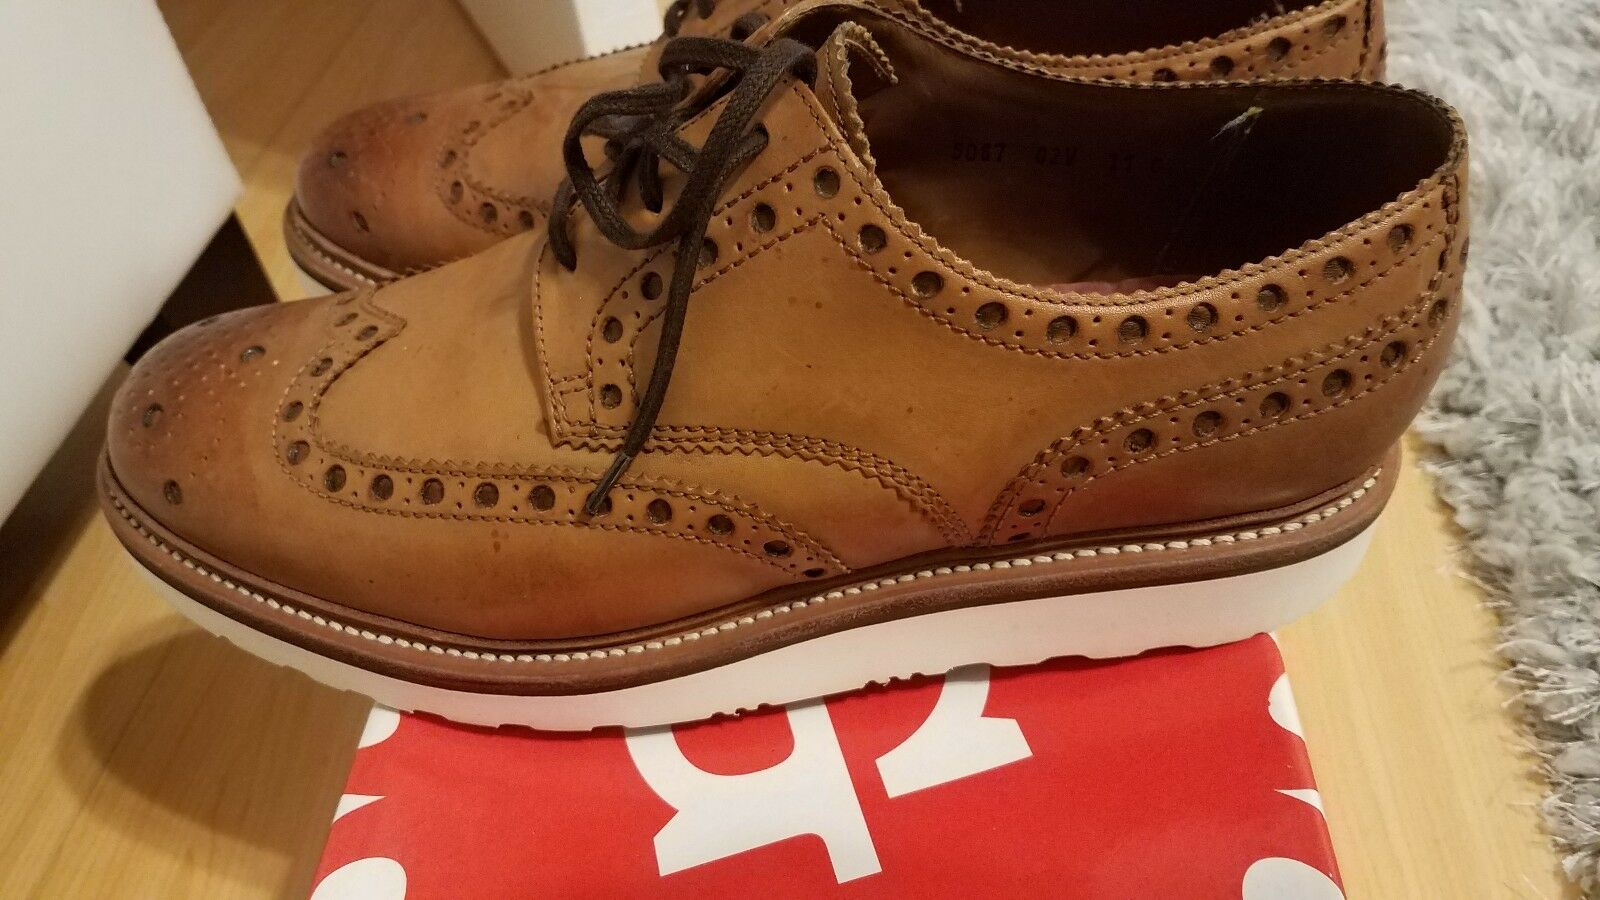 f6a083145871 ... Men Grenson Oxford shoes size 12 12 12 leather fe636b.